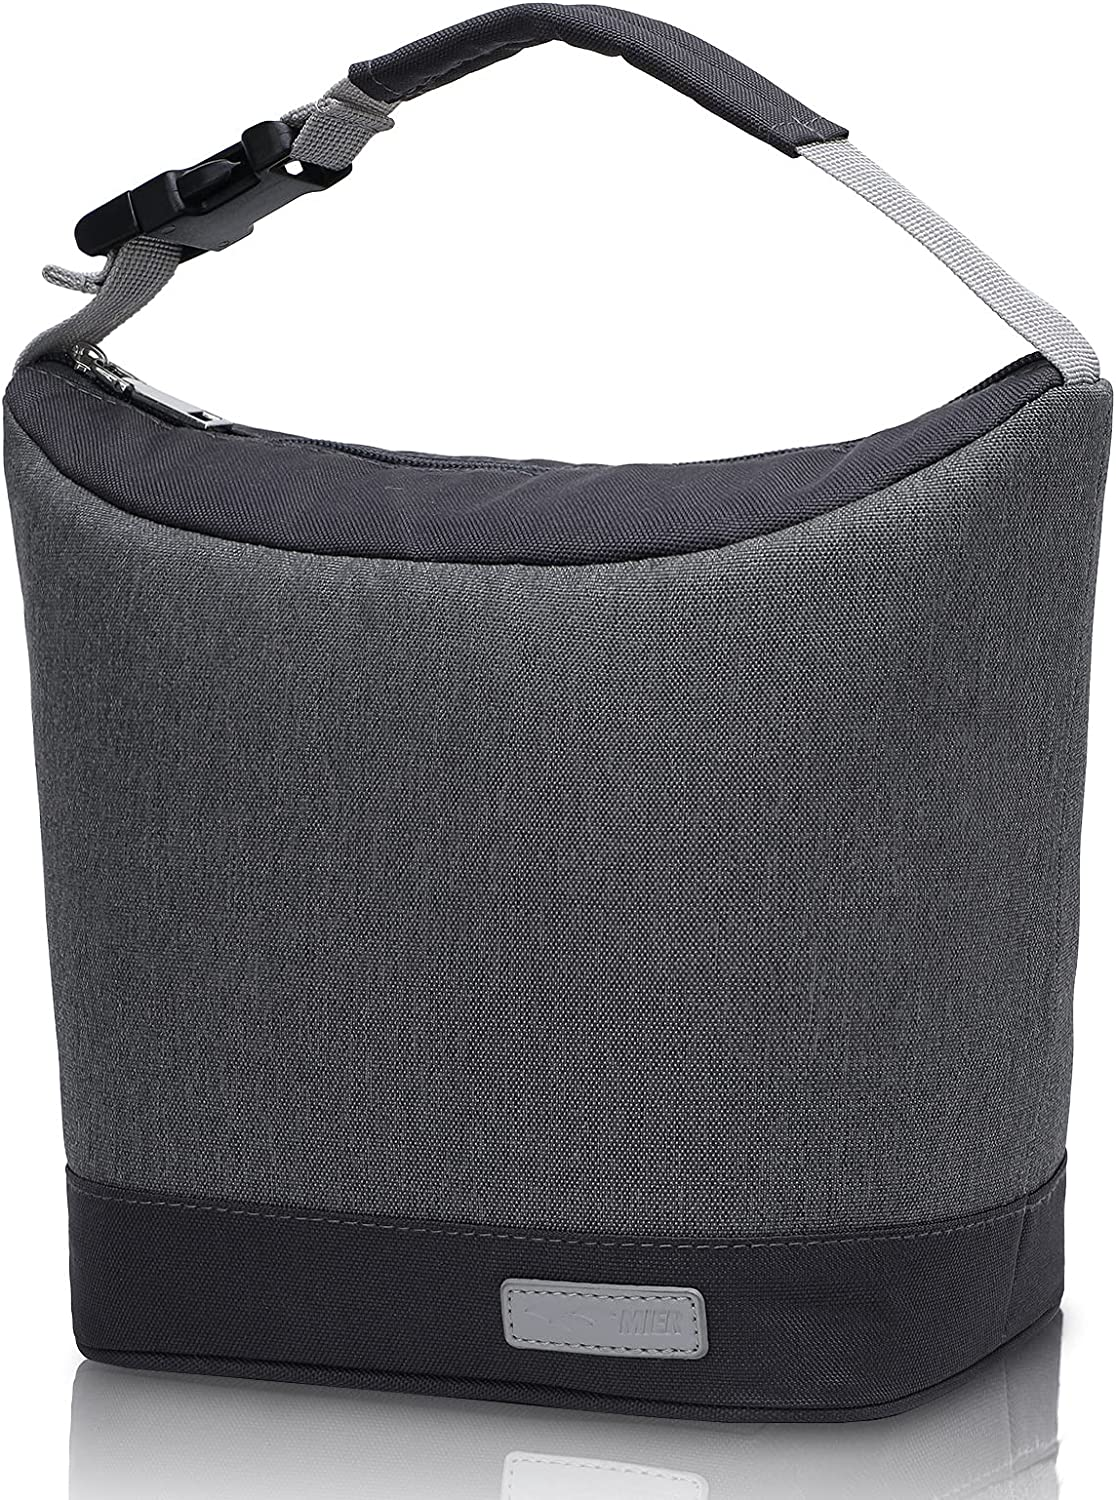 MIER Small Lunch Bags for Women Insulated Lunch Box Tote for Girls Boys Men Portable Leakproof Lunch Cooler Bag for Work Office School Picnic Travel (Dark Gray)